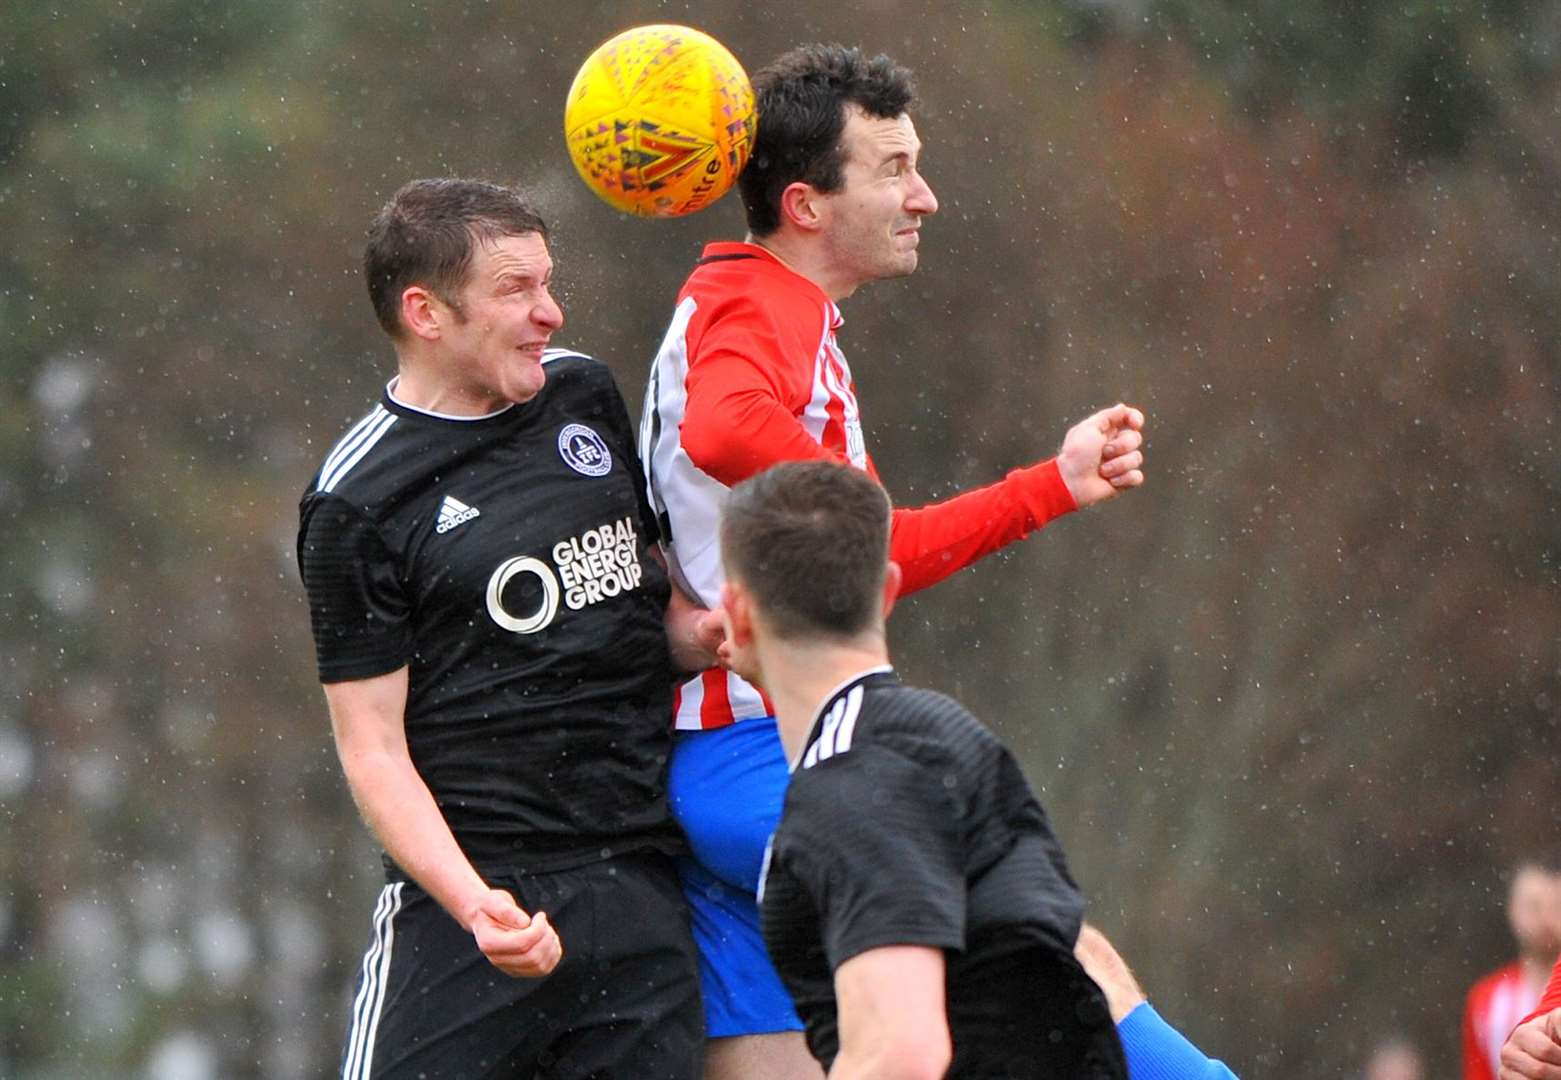 Eight is great to put Invergordon clear at the top of the league